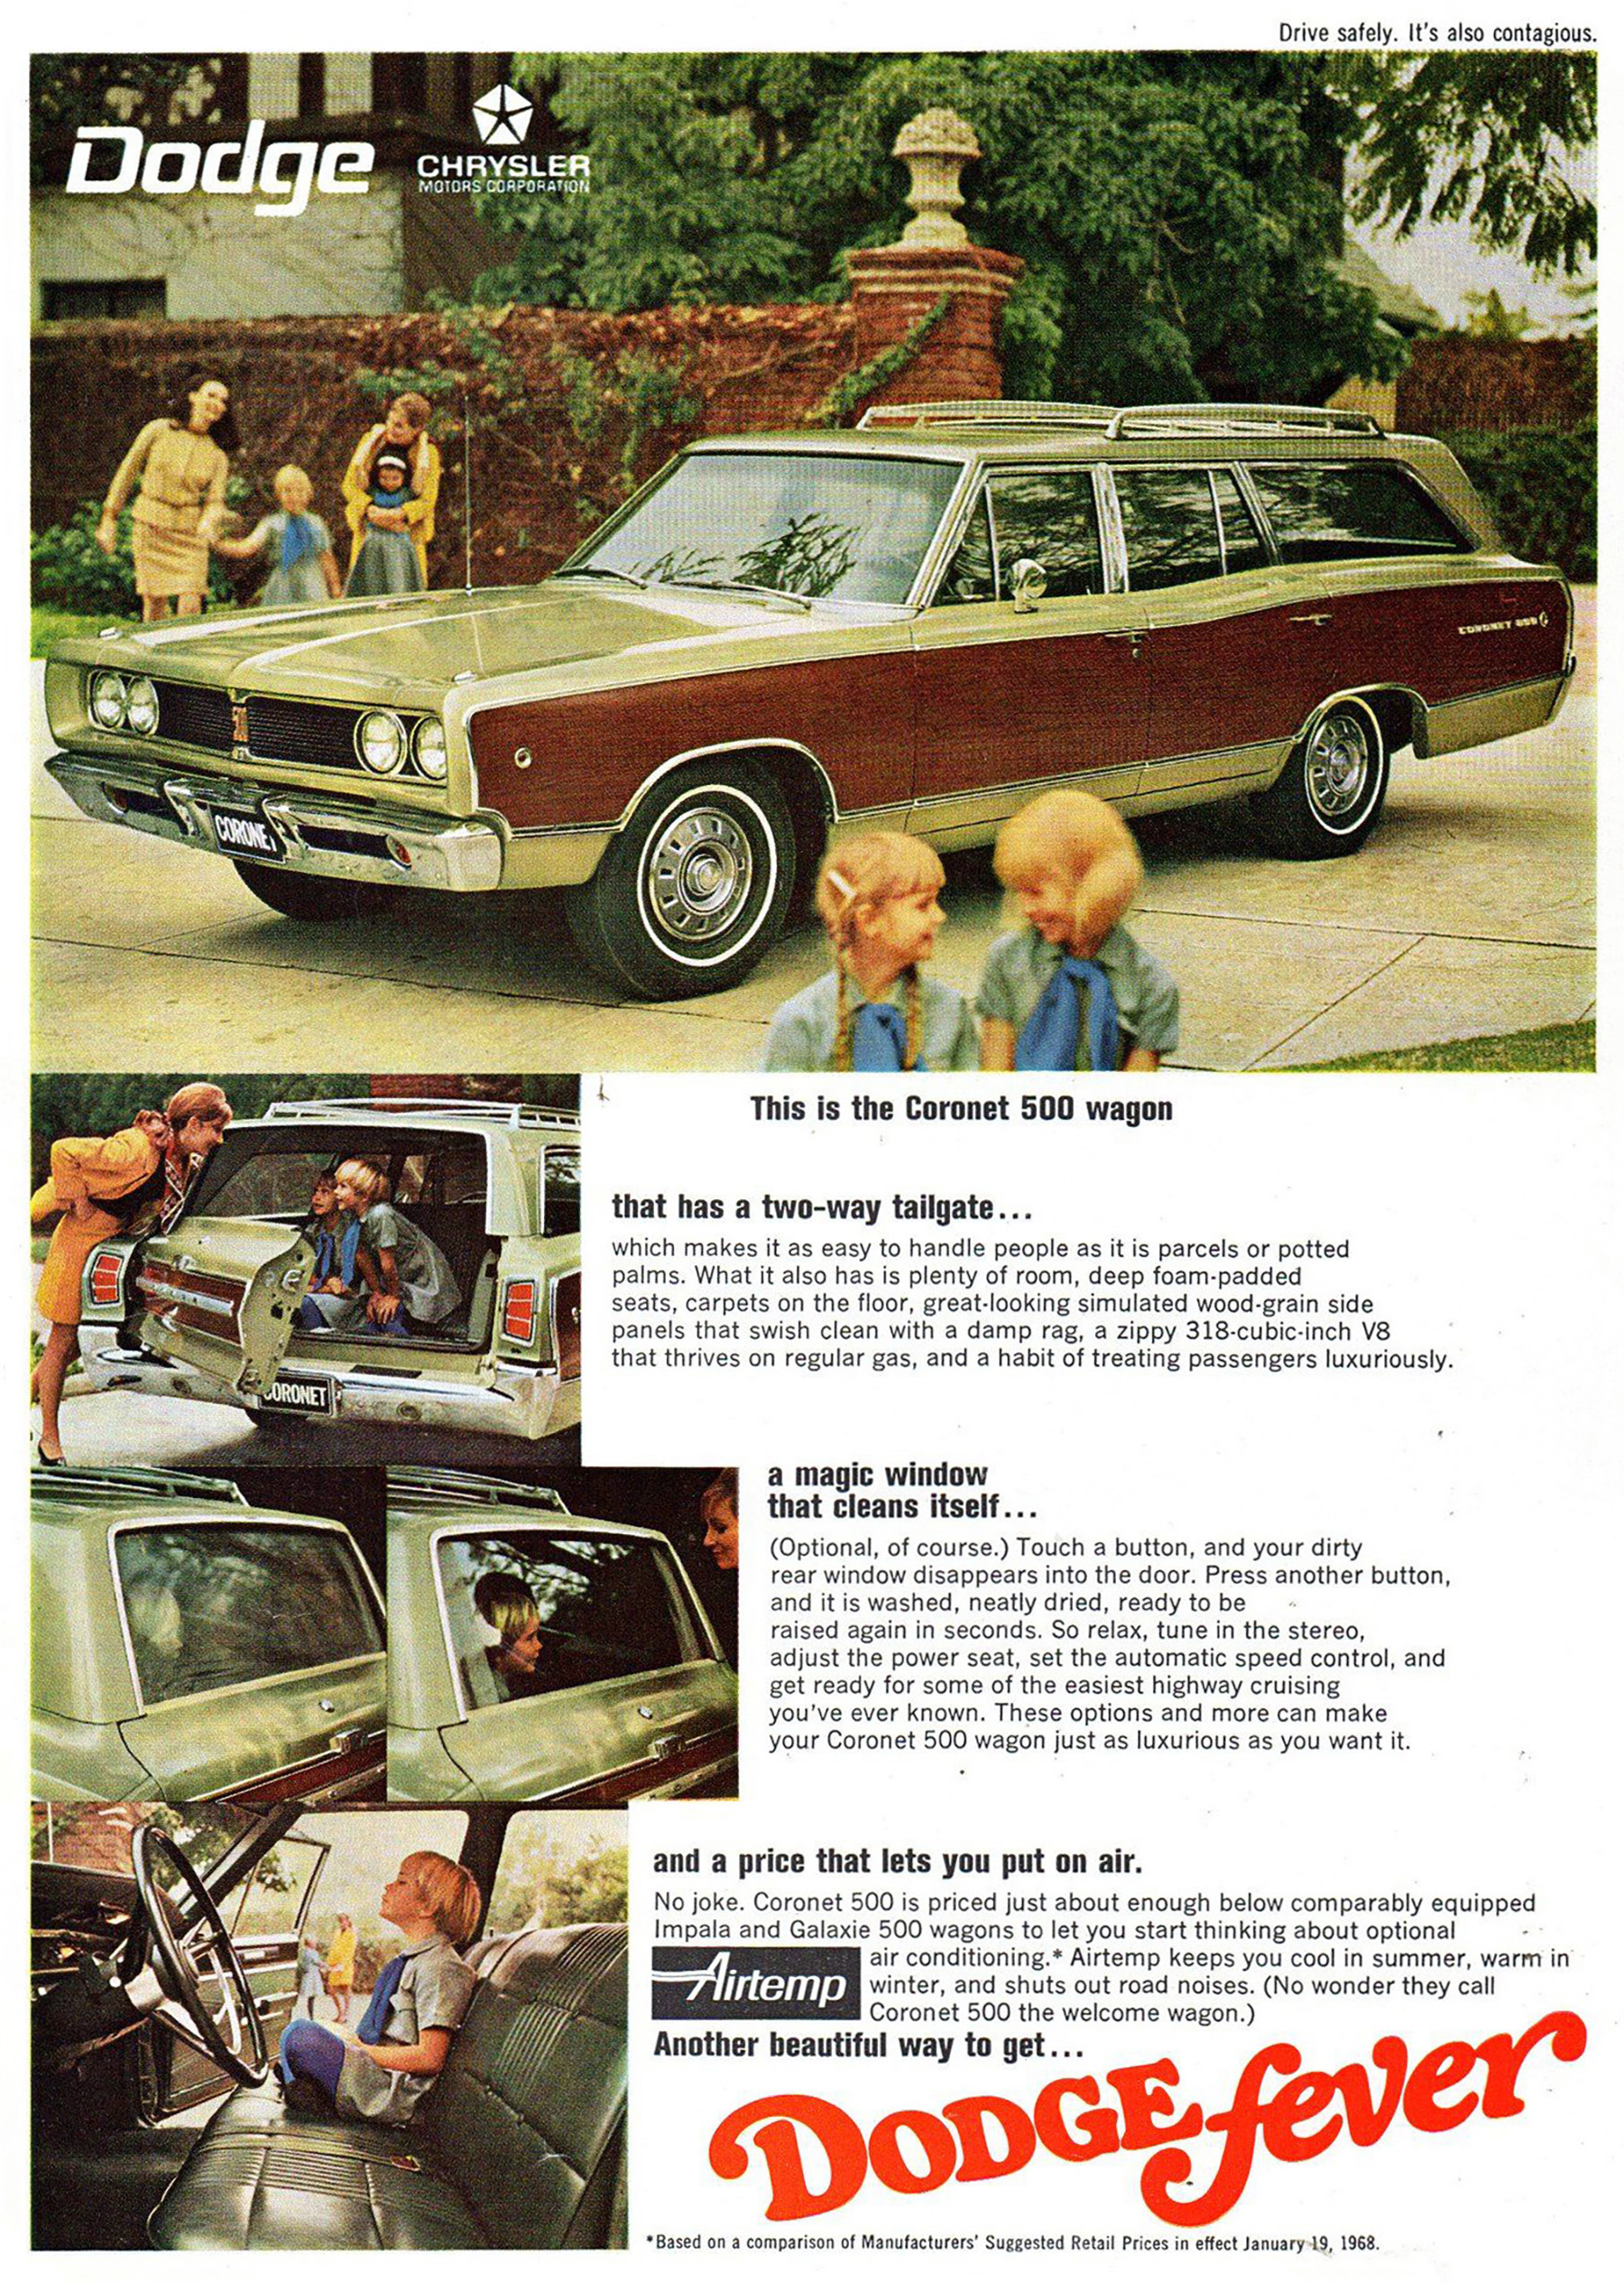 1968 Dodge Coronet 500 Ad, Wagon, Station Wagon,